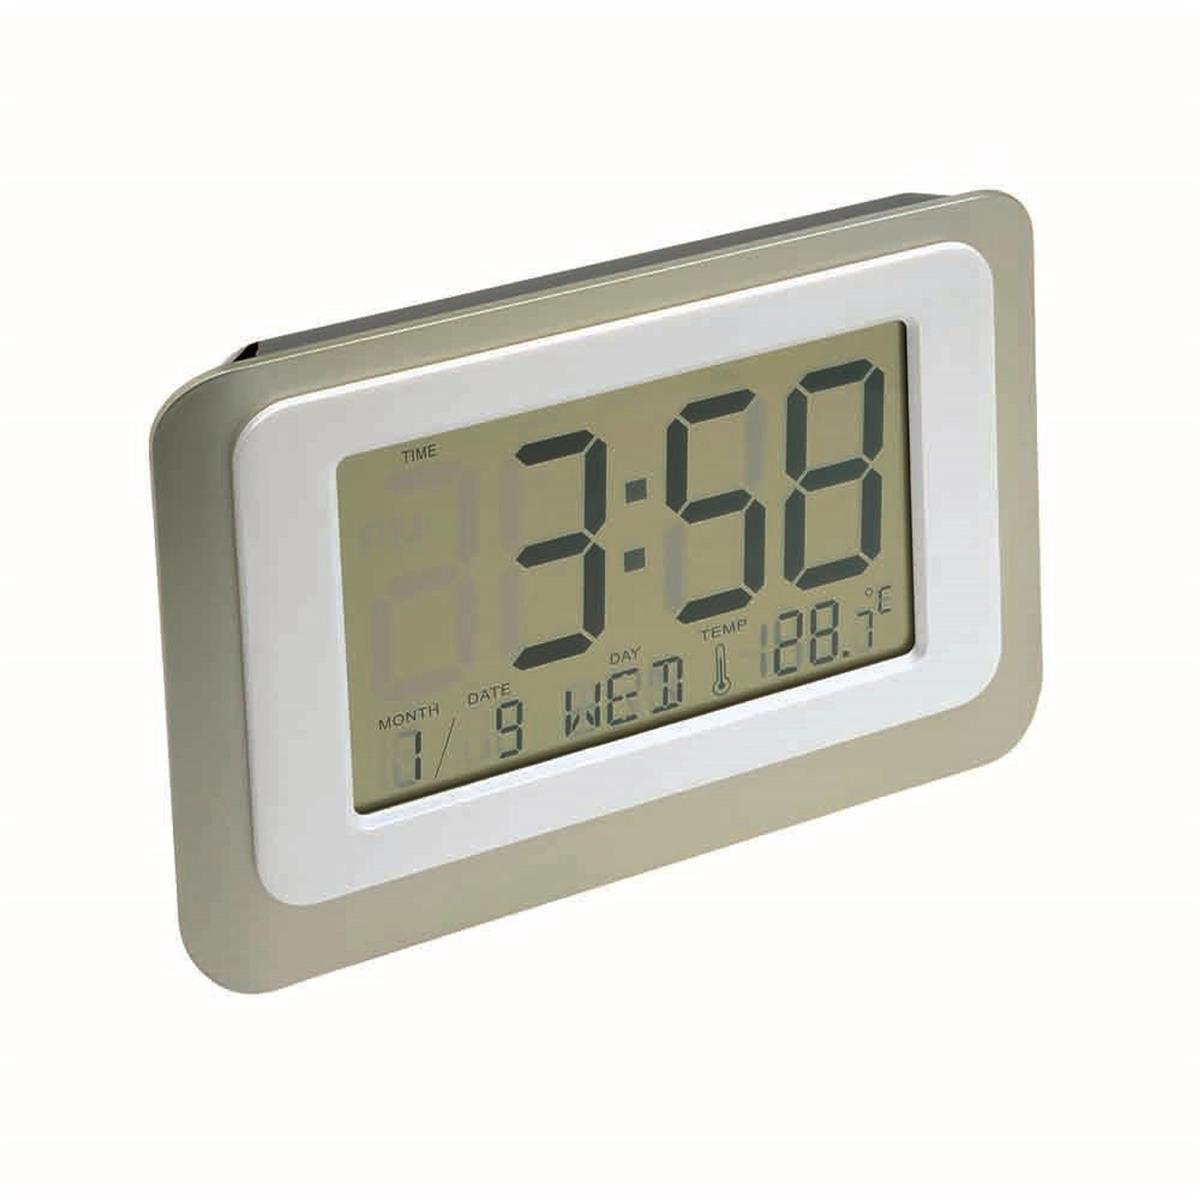 Digital LCD Clock 12/24 Hour switch with Thermometer and Count Down Timer